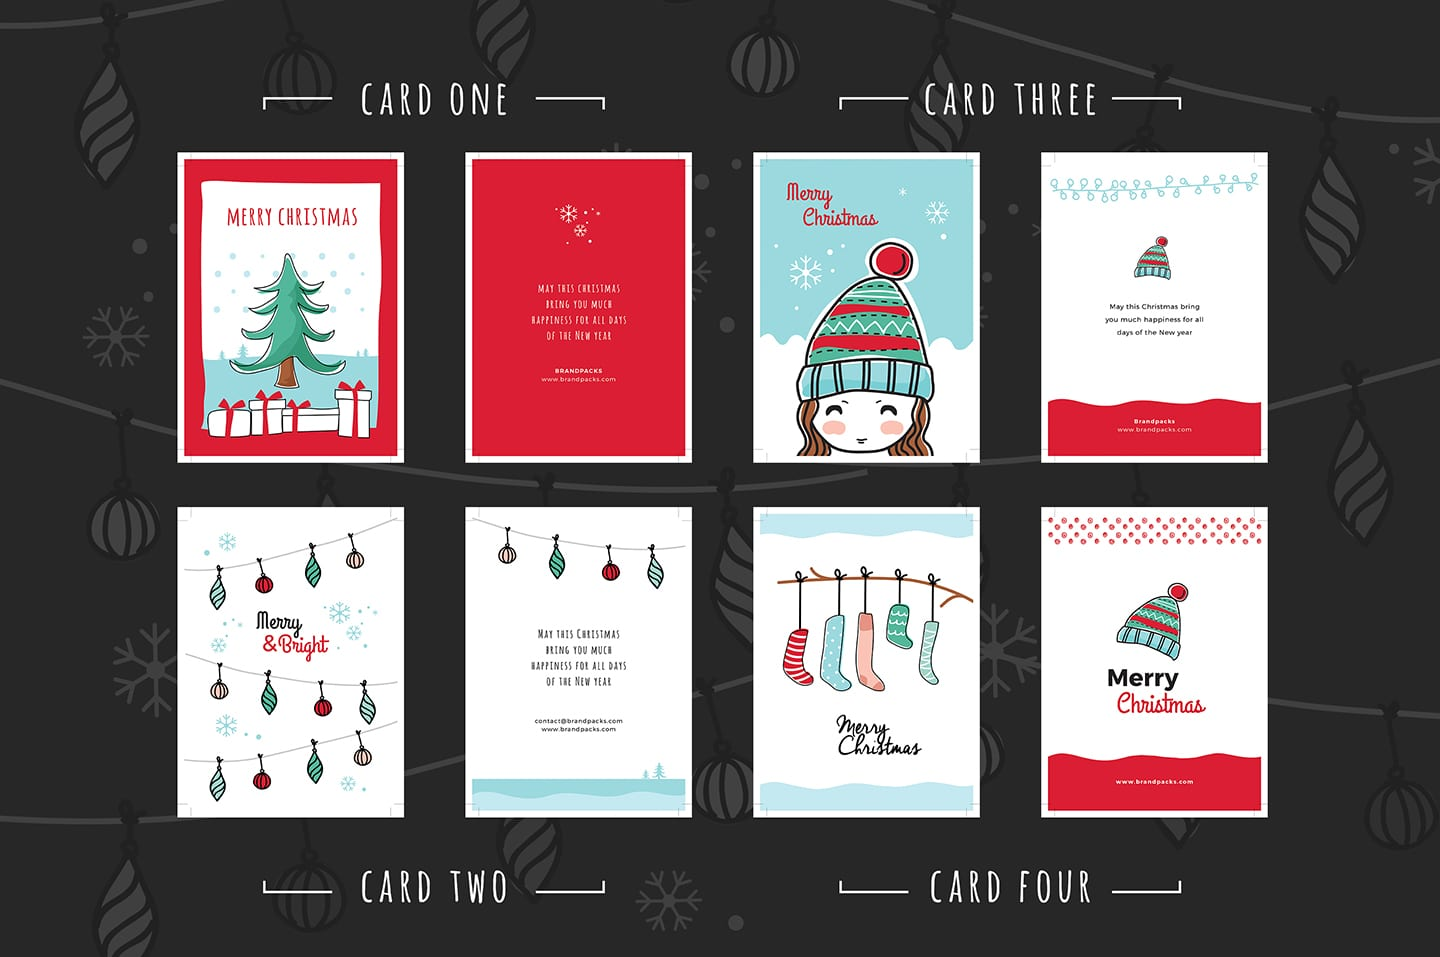 Download free adobe illustrator greeting card templates if you're looking for free greeting card templates then you're in luck! Free Christmas Card Templates For Photoshop Illustrator Brandpacks